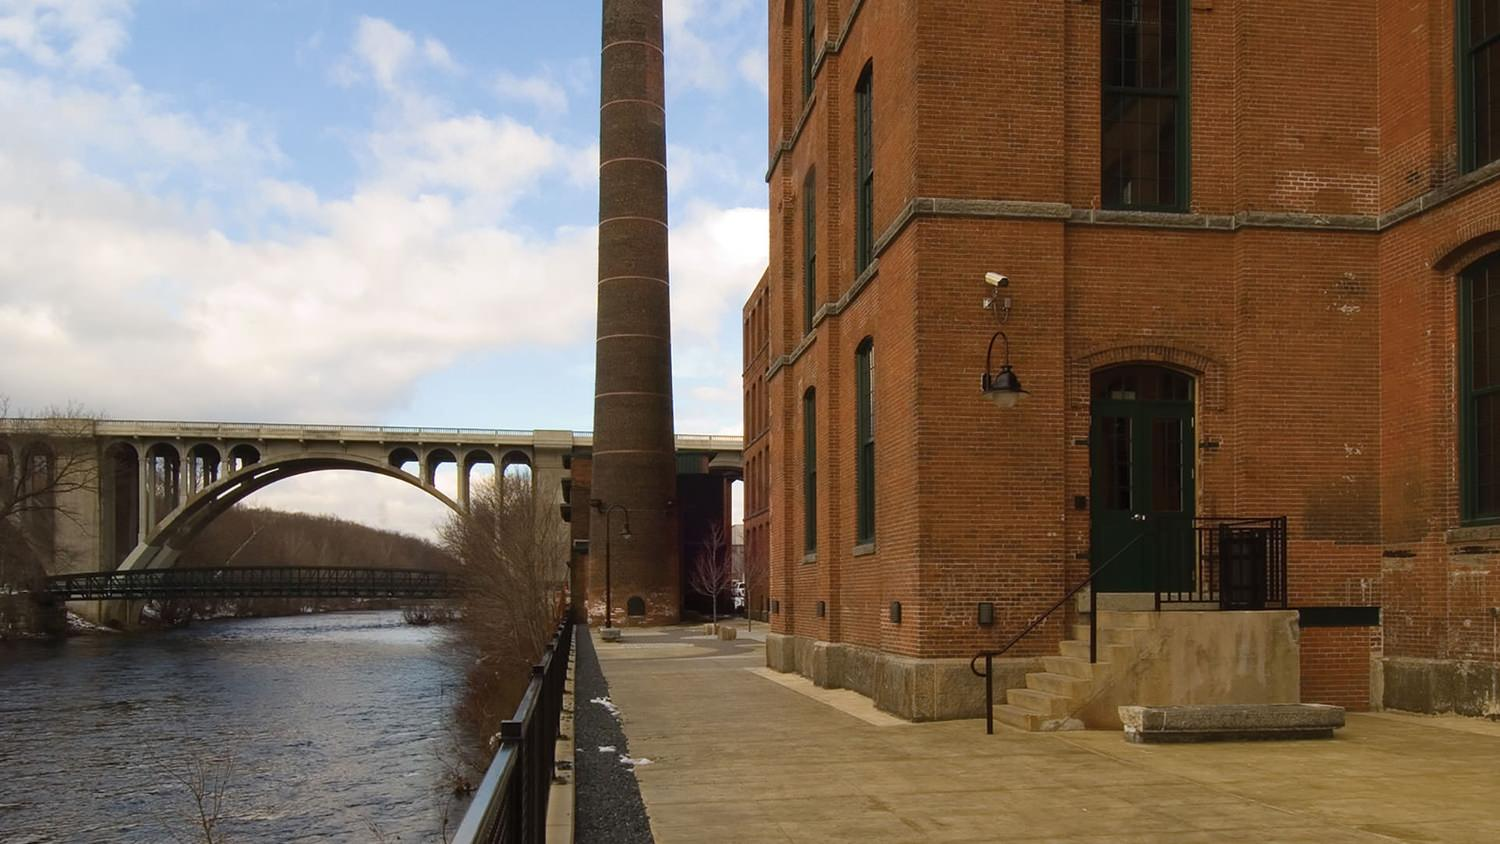 A large brown brick building with a tower that is next to a river and a bridge.